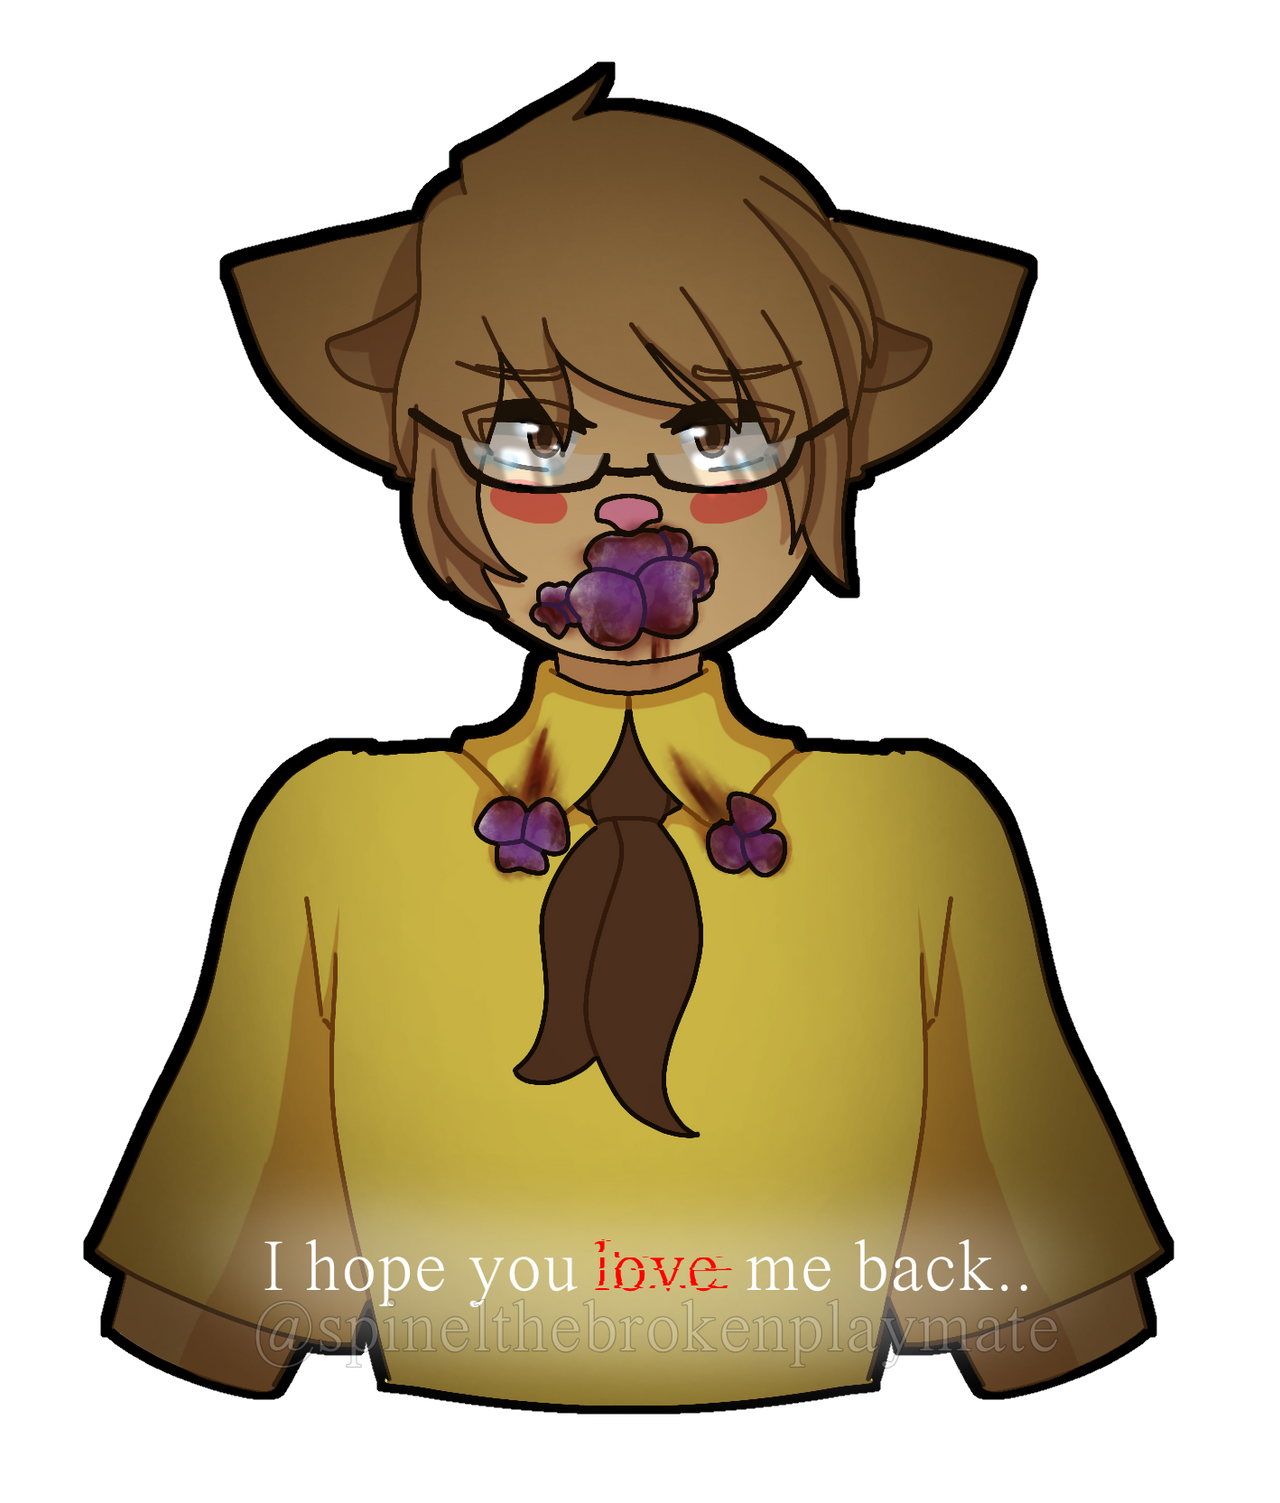 Give Me Back Roblox I Hope You Love Me Back Roblox Piggy By Sylveonplaysroblox On Deviantart